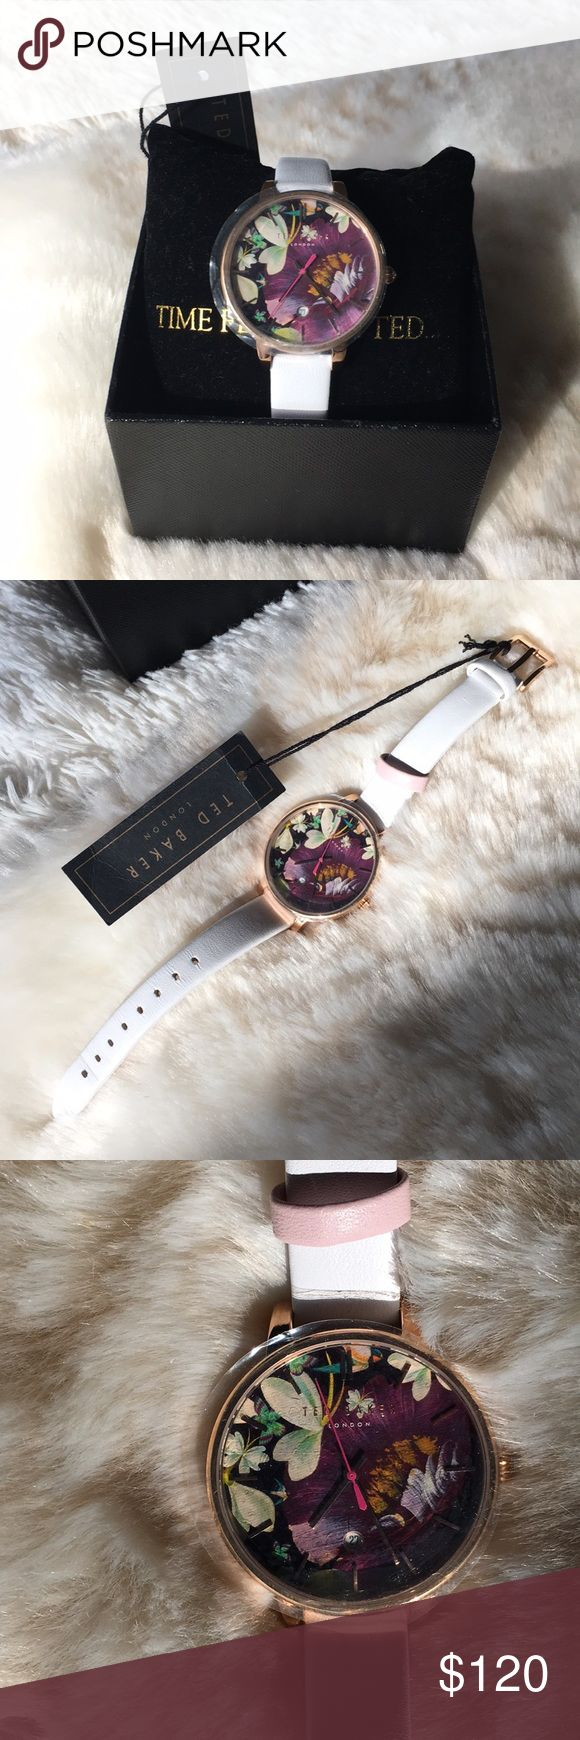 Ted Baker Kate Watch Purple Floral Face/White Band BNWT, never-worn, perfect condition Ted Baker Kate watch from the Classic Charm collection! Even has plastic on watch face still! White leather band, rose gold hardware, purple face with beautiful flowers. Tells time as well as day of the month! Original purchase price=$155. Comes with box! Great for Spring/Easter!! **Going out of town on 3/6, so last day to ship is 3/5. Make an offer soon!** Ted Baker Accessories Watches